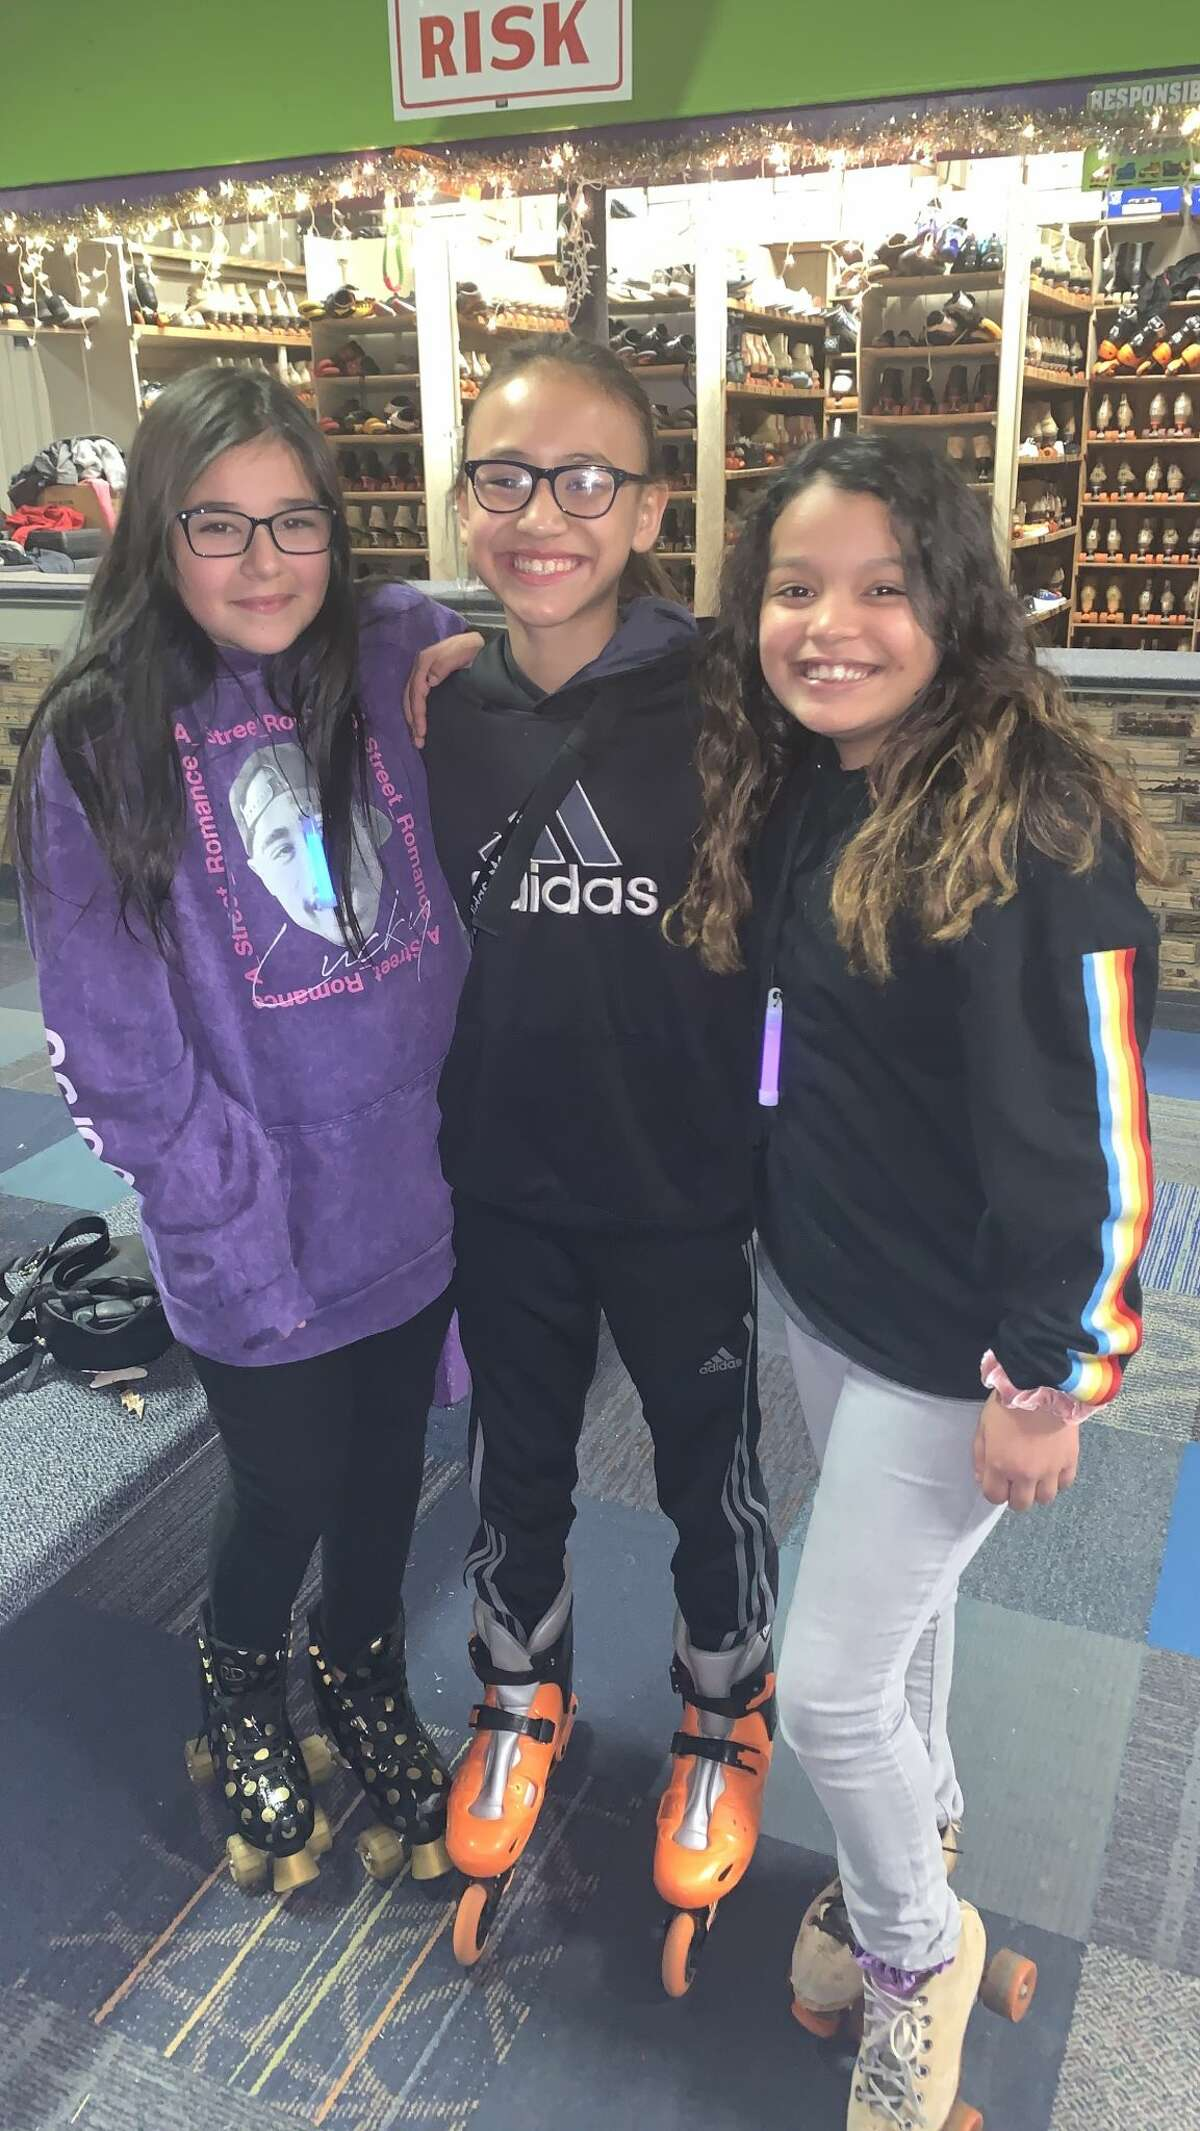 Roller skating: Lily Conde, from left, Abby Torres and Alizae Rangel